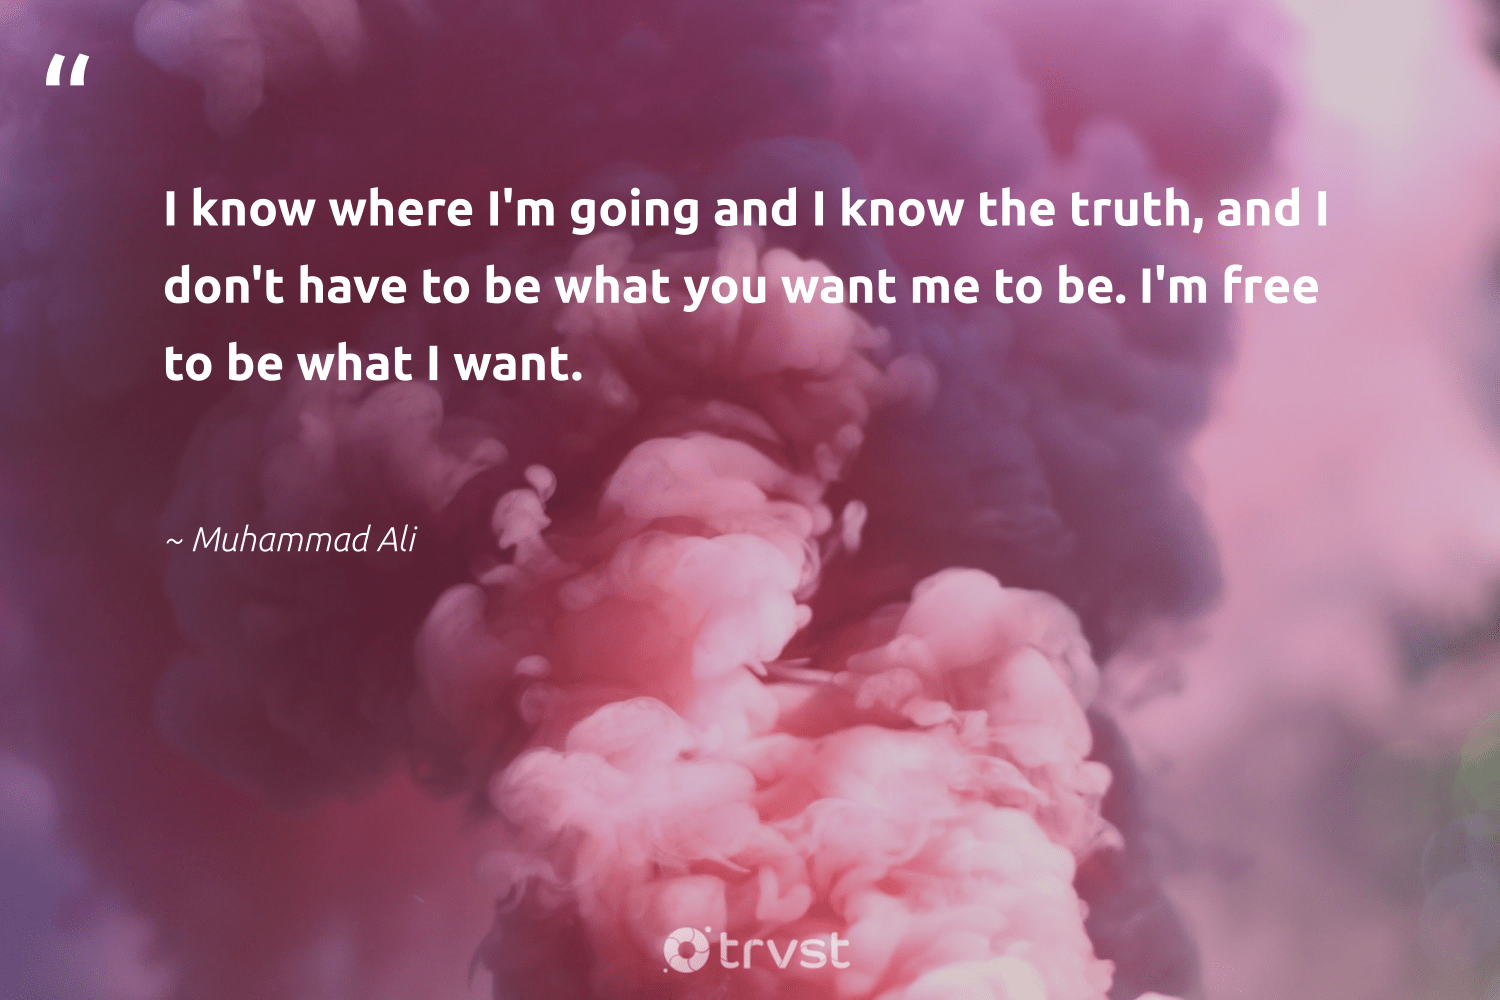 """""""I know where I'm going and I know the truth, and I don't have to be what you want me to be. I'm free to be what I want.""""  - Muhammad Ali #trvst #quotes #truth #begreat #dotherightthing #softskills #dogood #futureofwork #beinspired #nevergiveup #changetheworld #dosomething"""